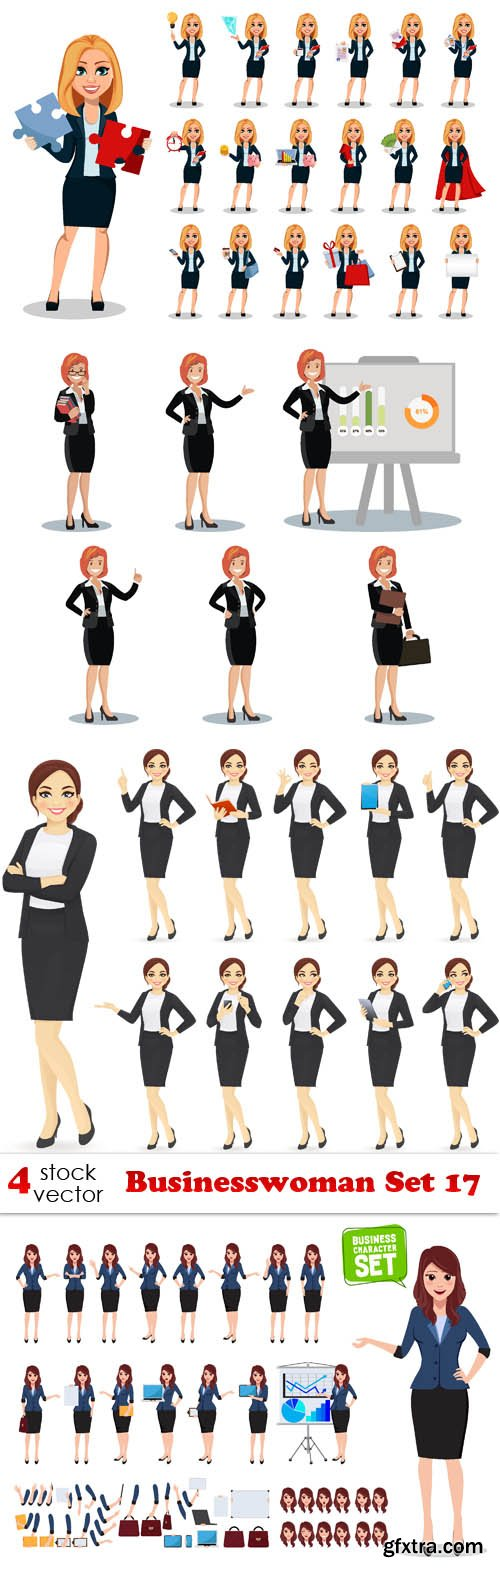 Vectors - Businesswoman Set 17